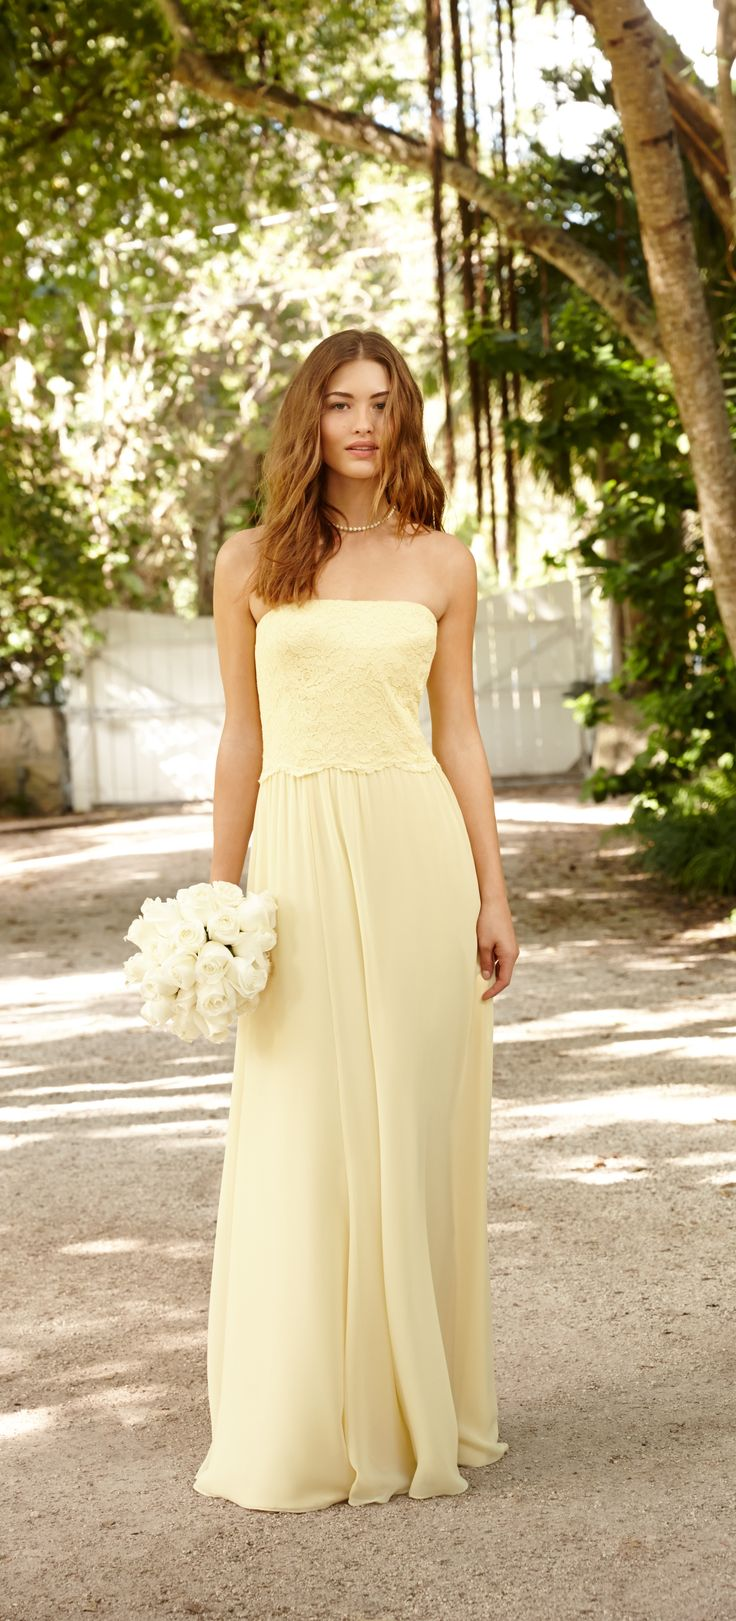 Best 20+ Pale yellow bridesmaid dresses ideas on Pinterest | Lemon ...